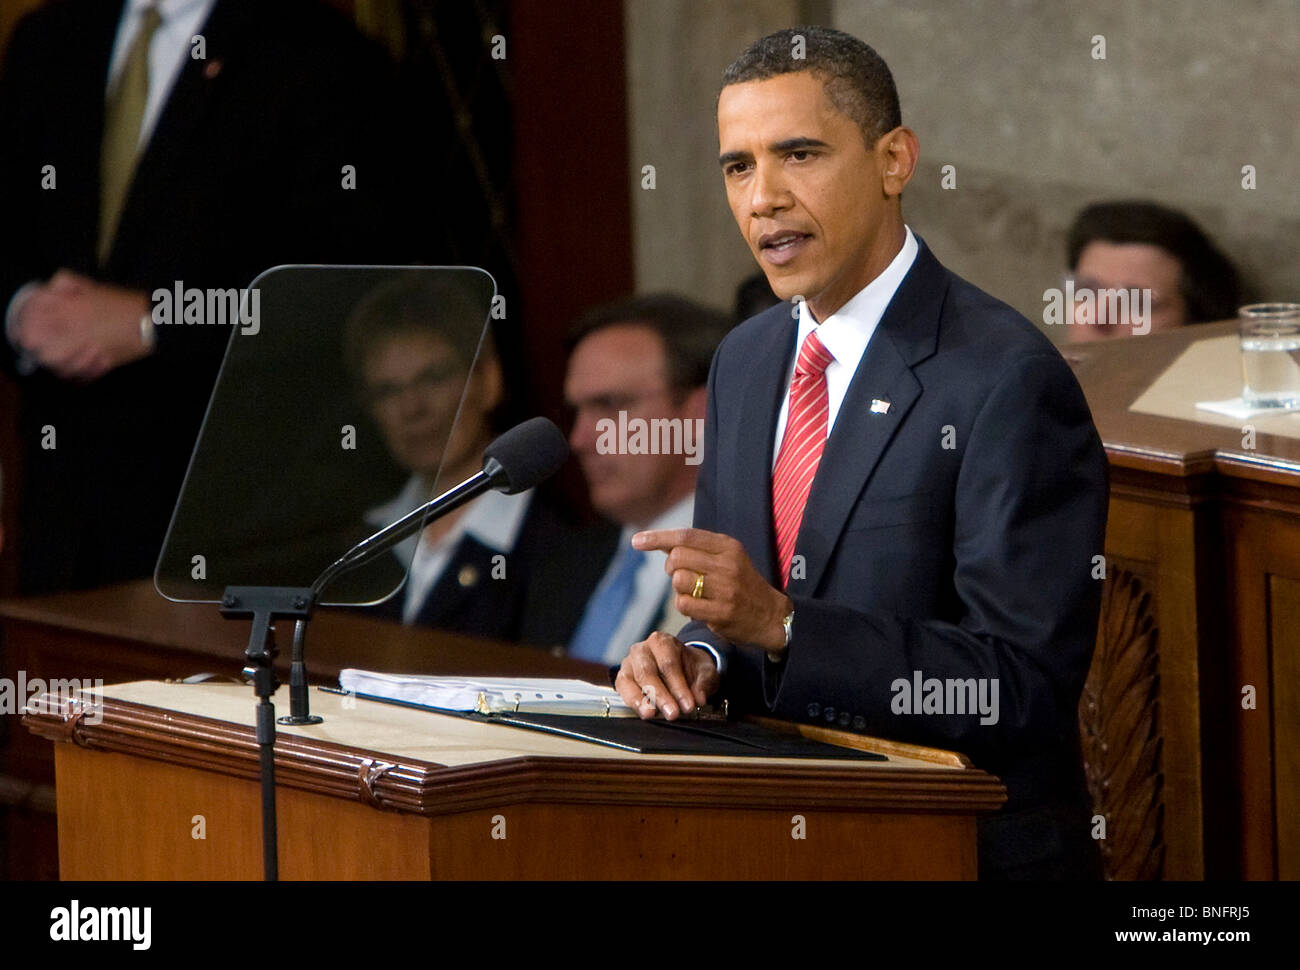 President Barack Obama addresses a joint session of Congress on Healthcare reform.  - Stock Image